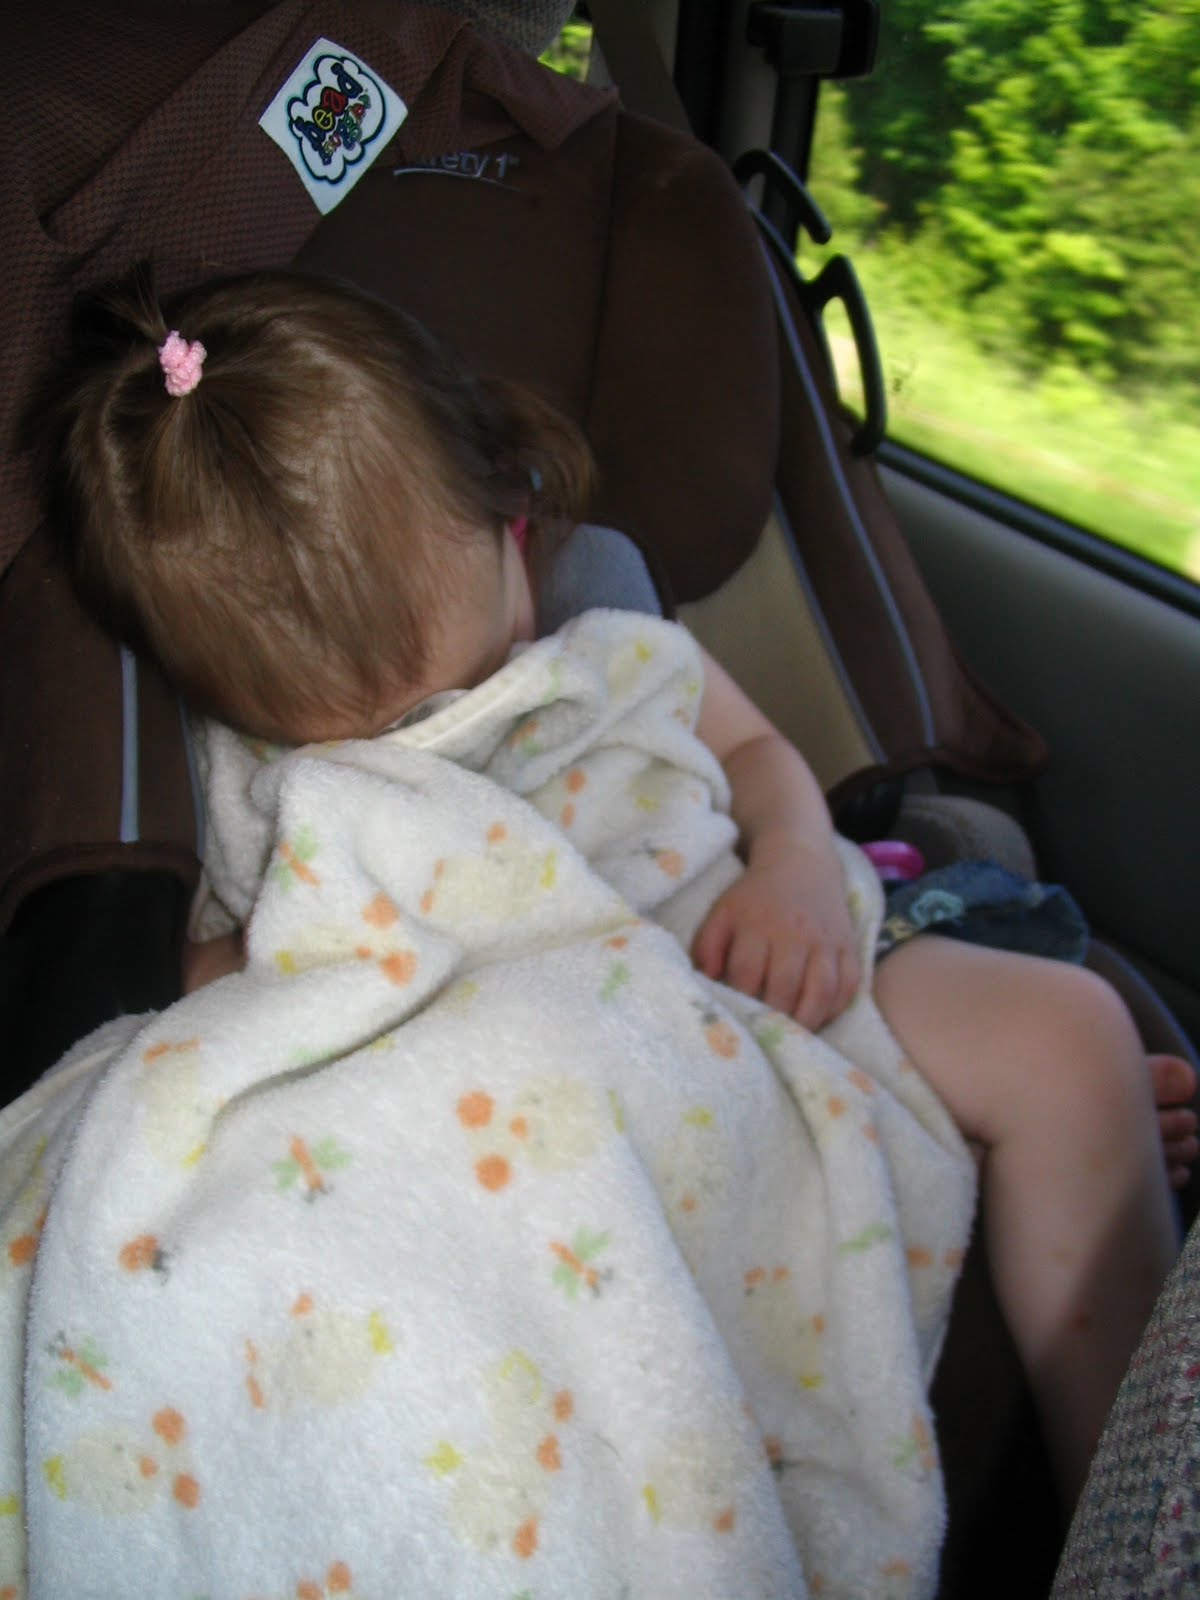 Ones Heads From Slumping Over When Sleeping In A Carseat Or Stroller But I Had Several Questionsplus Wasnt Sure What My Girls Would Think Of It